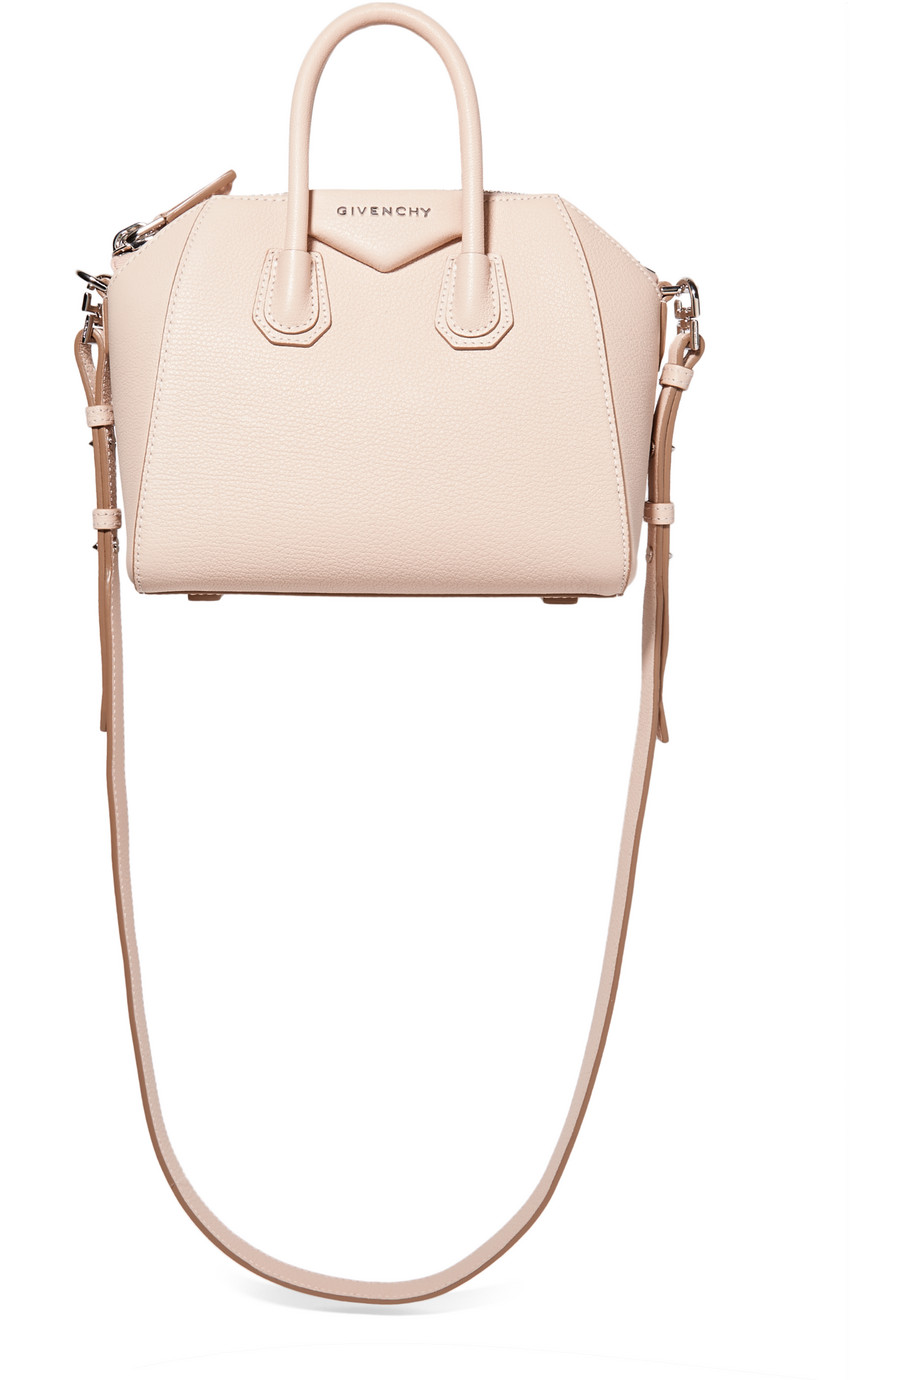 Givenchy Mini Antigona Shoulder Bag in Pastel-Pink Leather